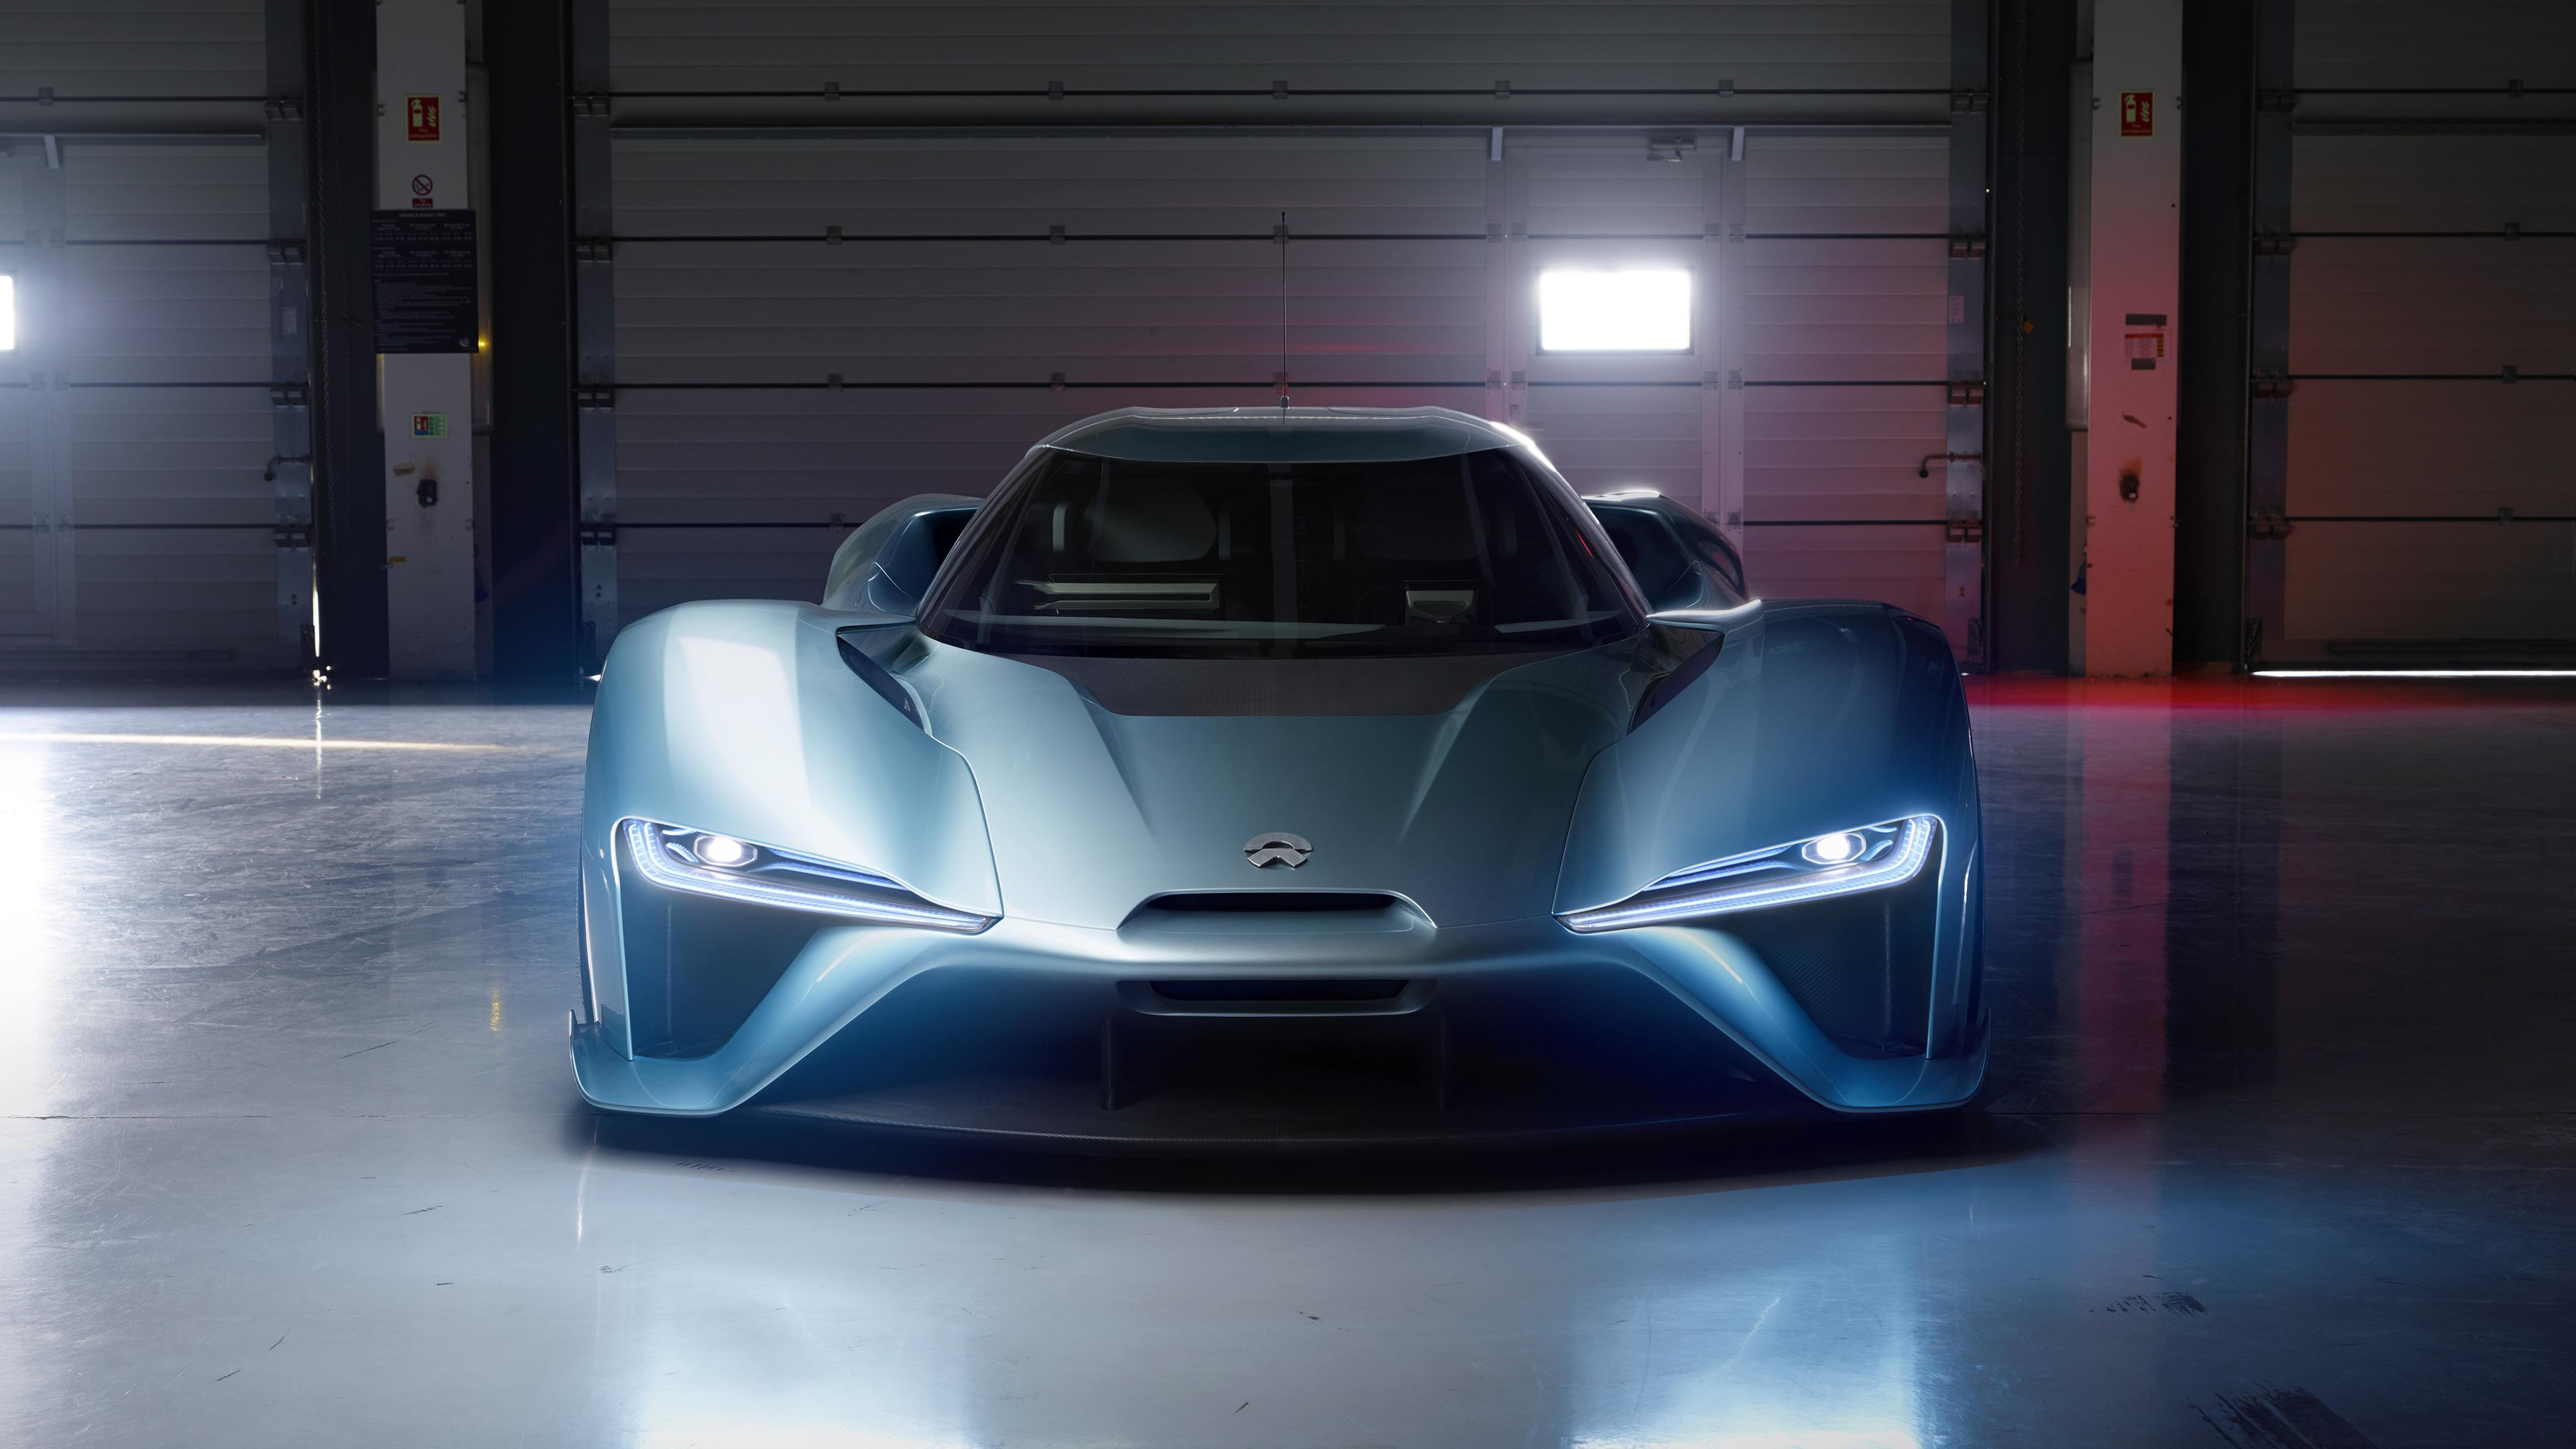 nio ep9 electric car 1539104887 - Nio EP9 Electric Car - nio ep9 wallpapers, hd-wallpapers, electric cars wallpapers, cars wallpapers